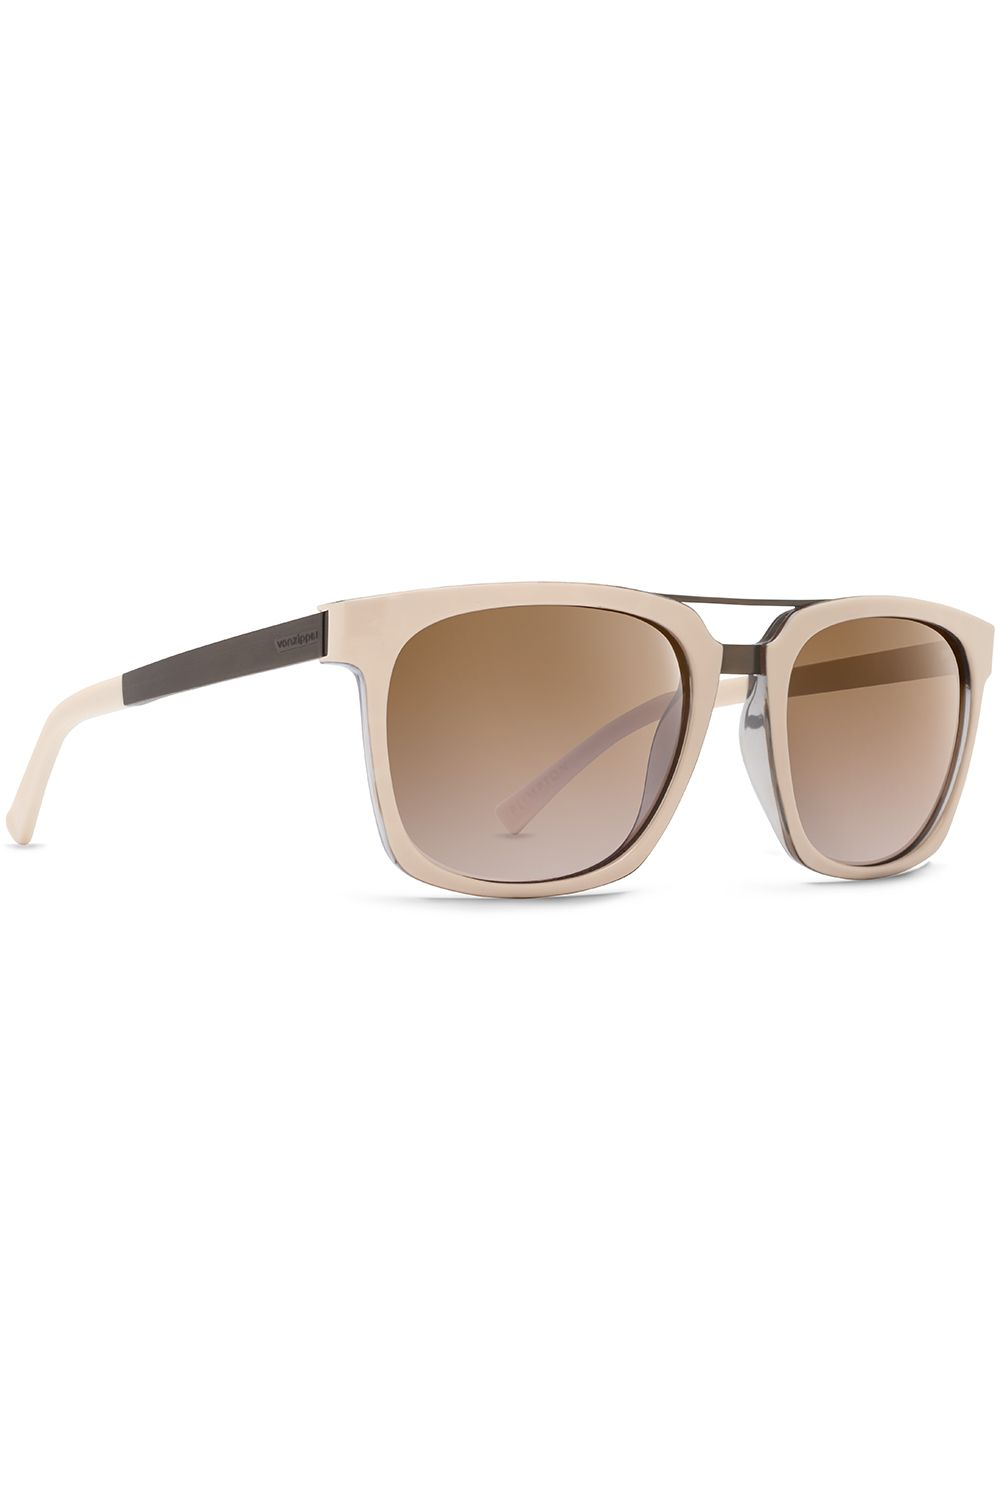 Oculos VonZipper PLIMPTON Nude Crystal Tort Copper / Silver Flash Brown Gradient